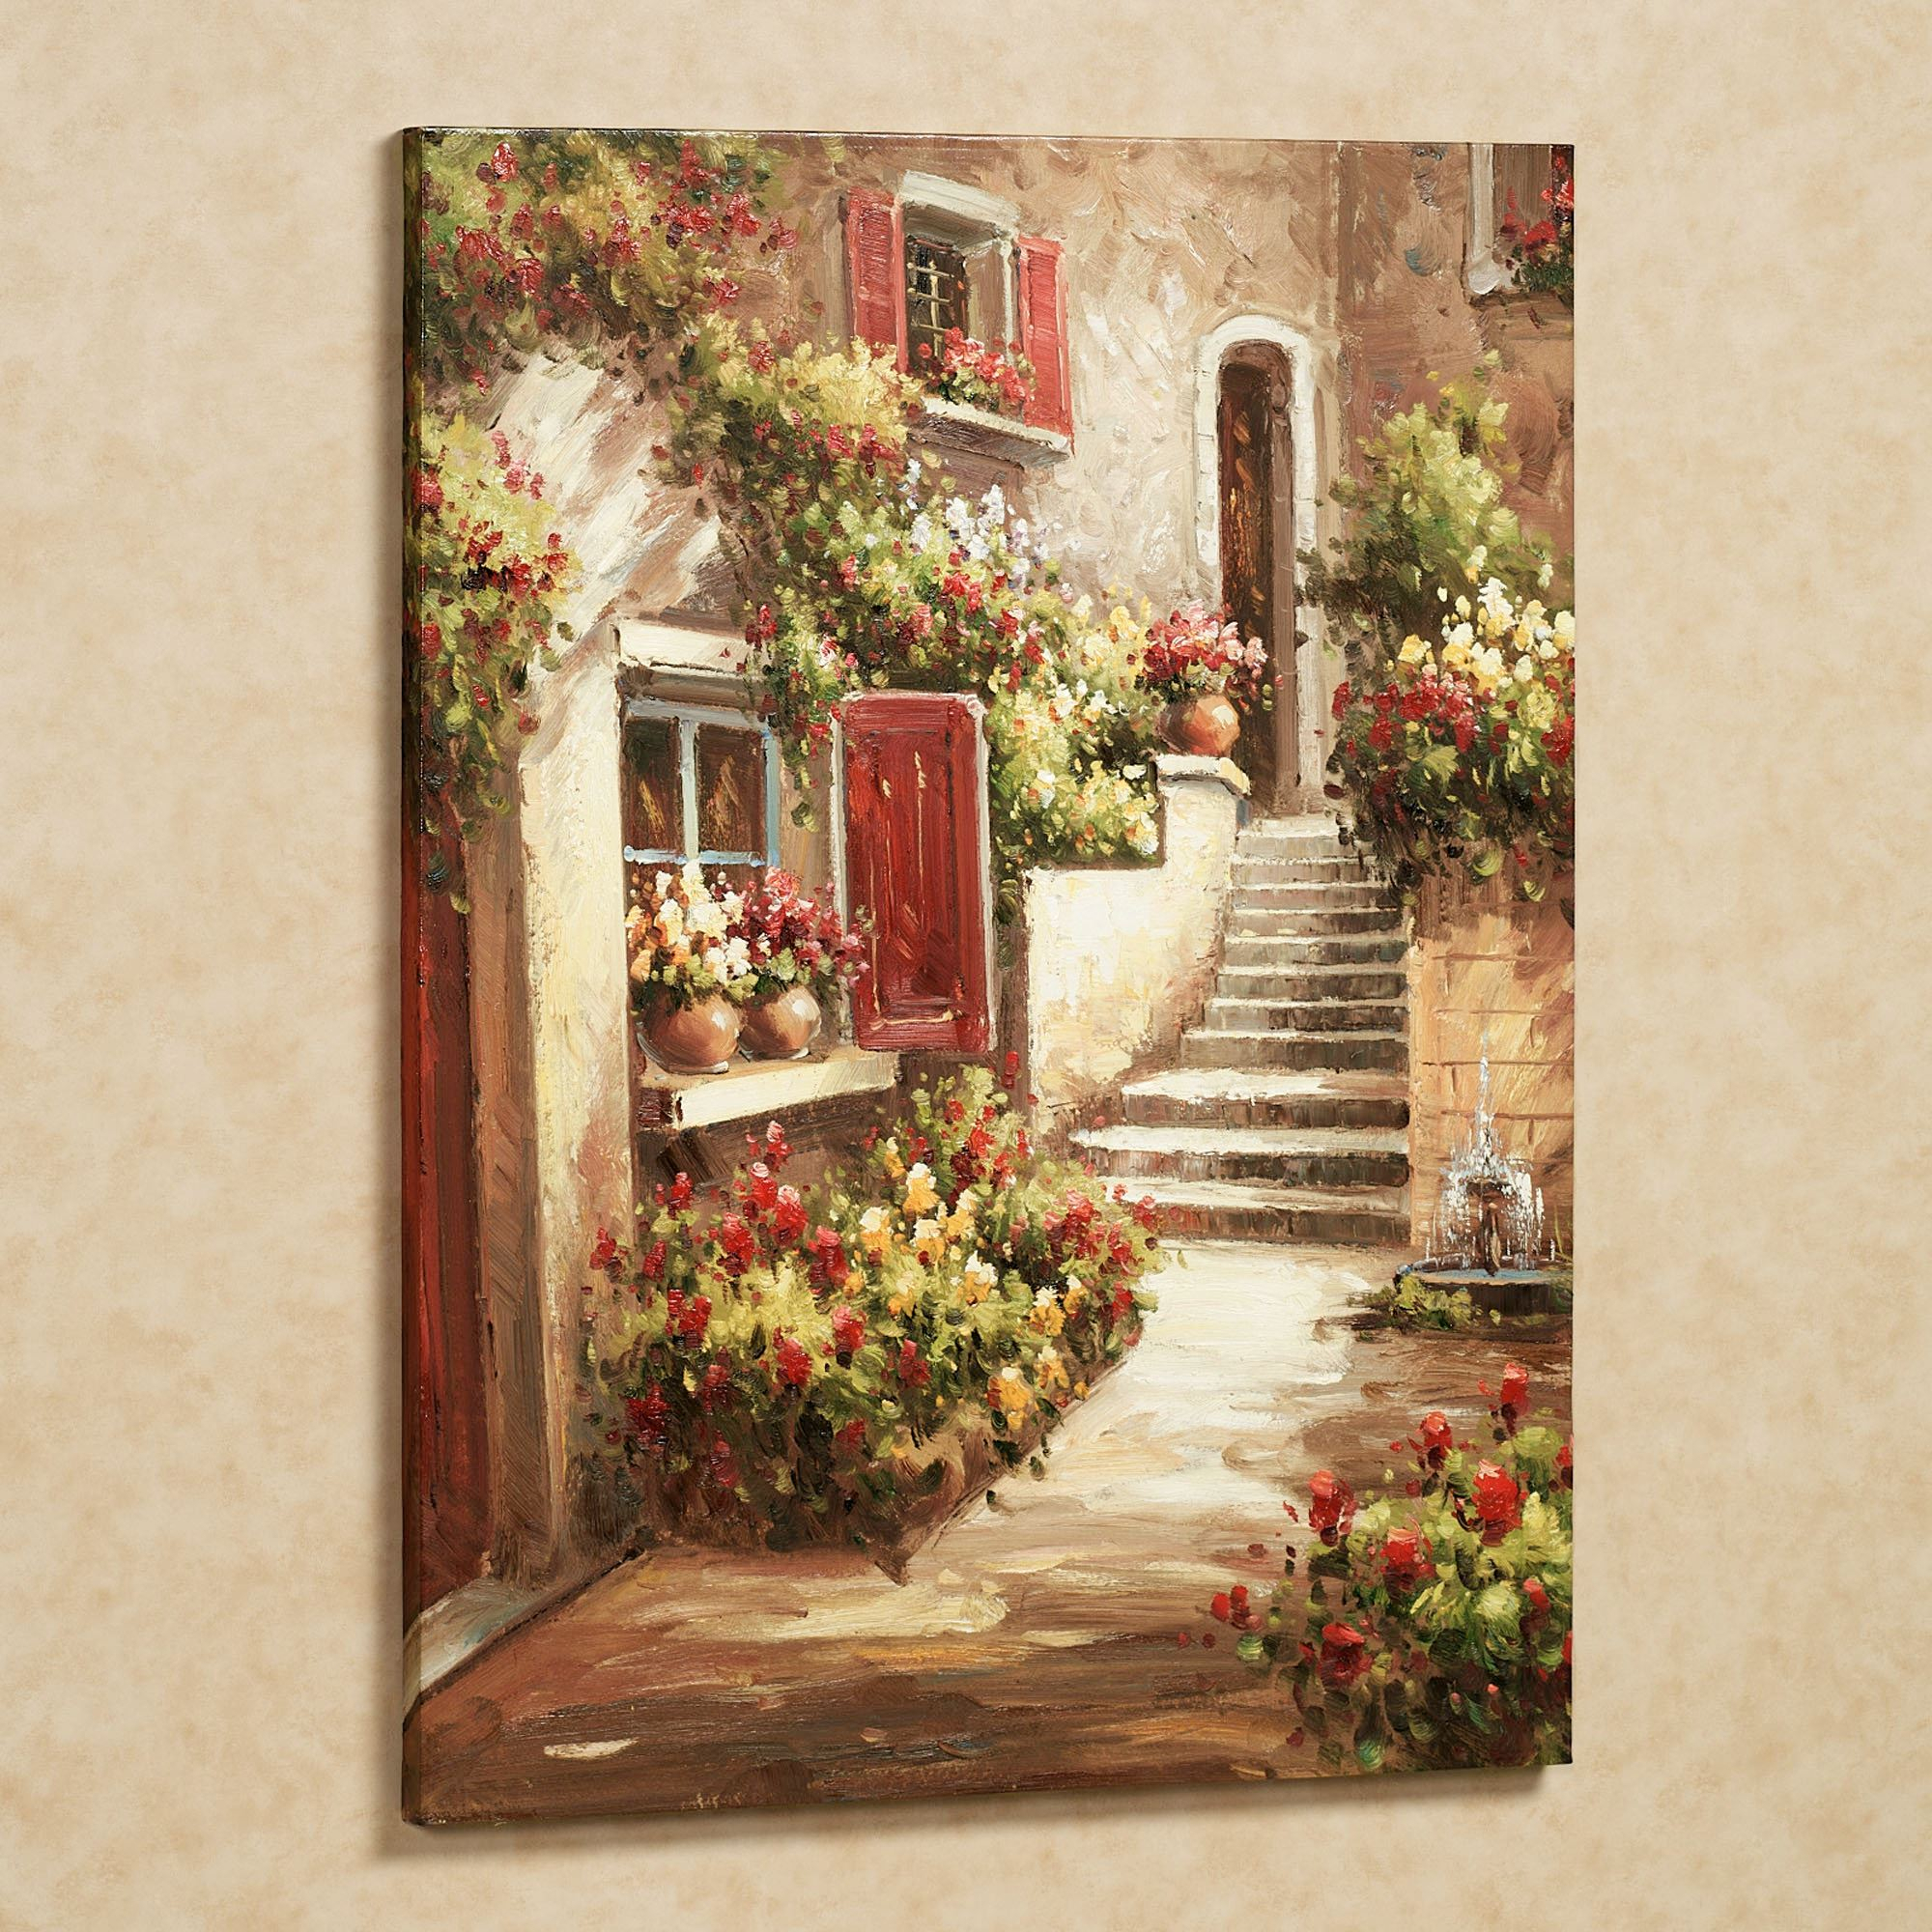 Tuscan Flowers Canvas Wall Art Throughout Current Blended Fabric Italian Wall Hangings (View 4 of 20)